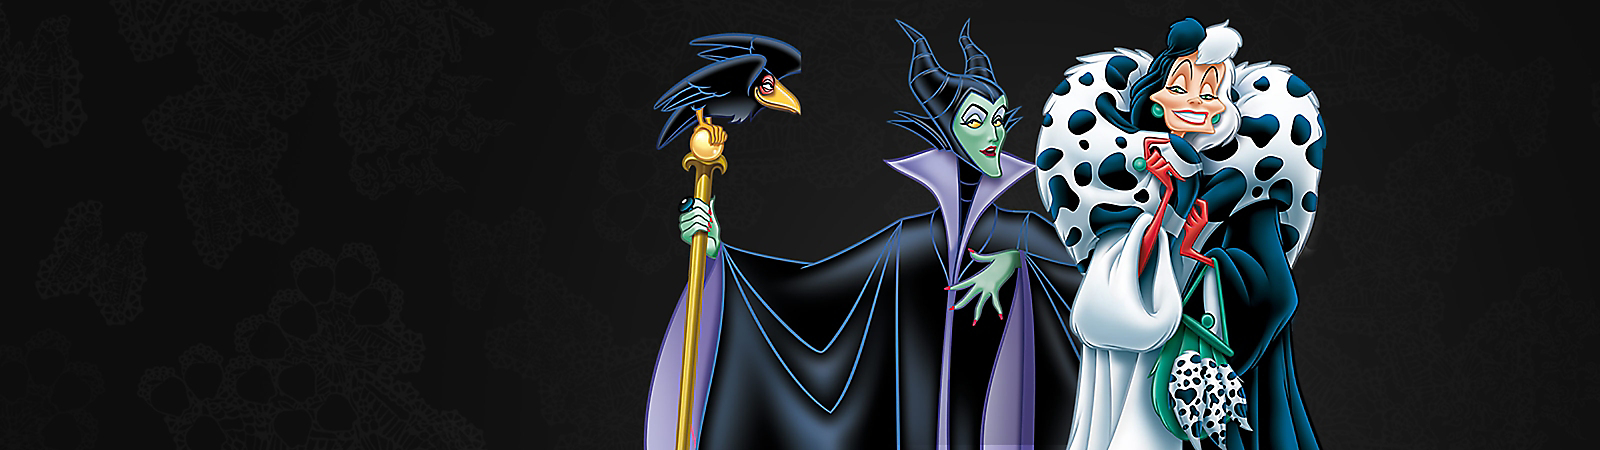 Background image of Disney Villains